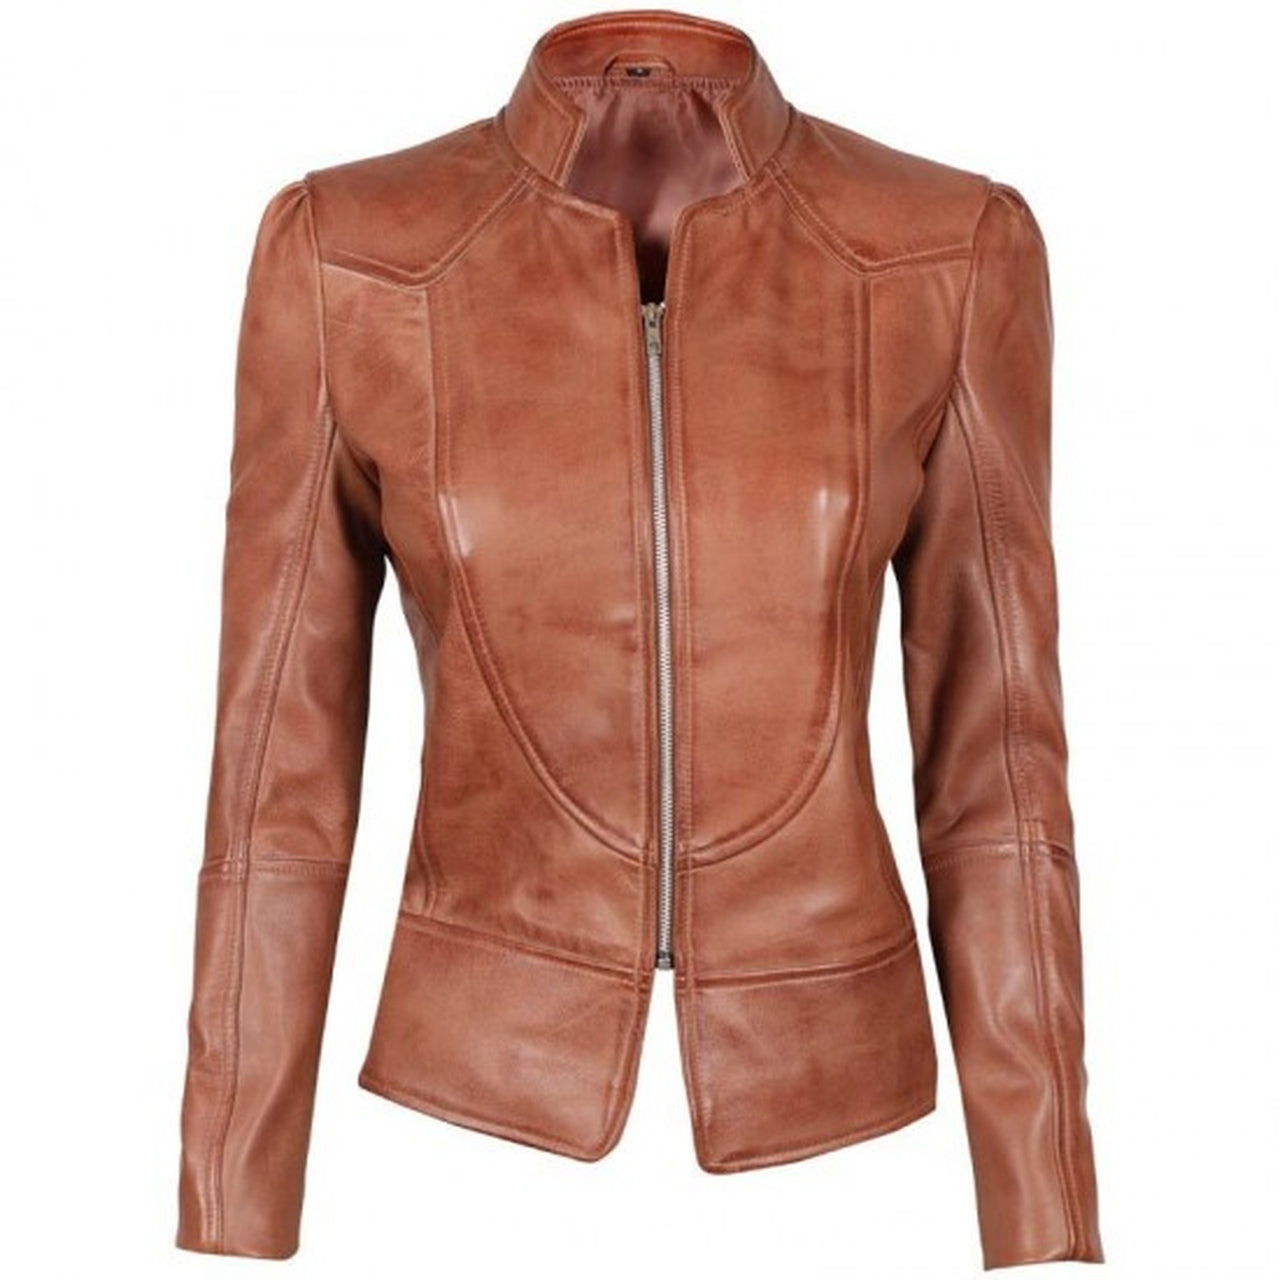 Brown Fitted Leather Jacket for Women - Leather Jacket